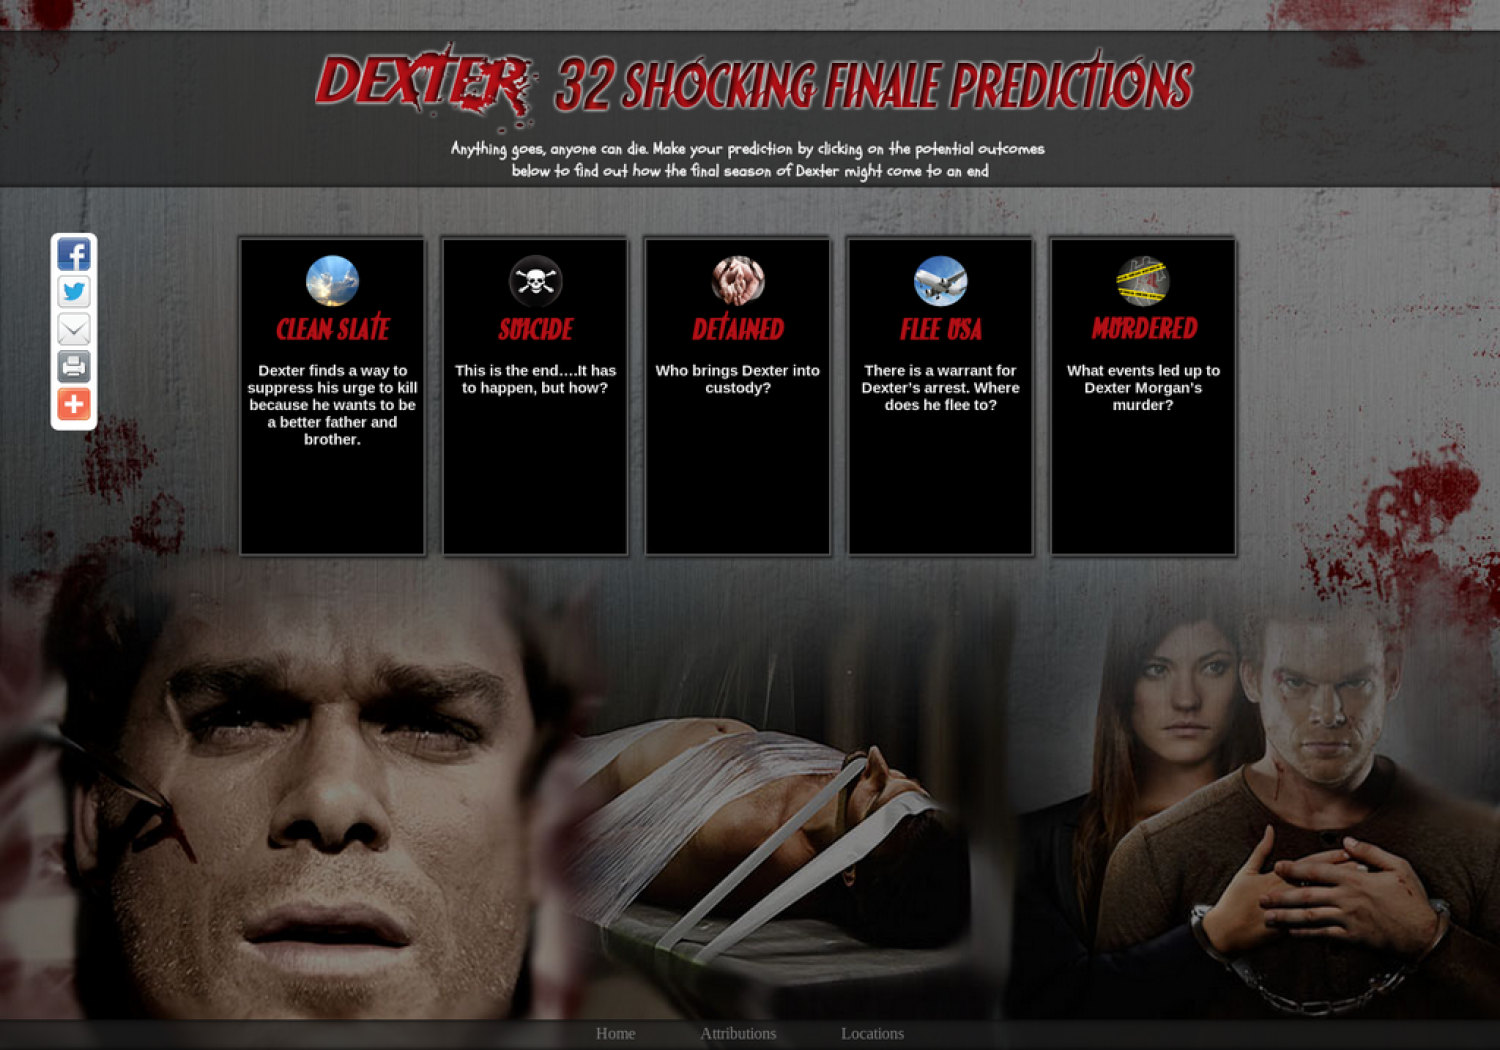 Dexter: 32 Shocking Finale Predictions Infographic